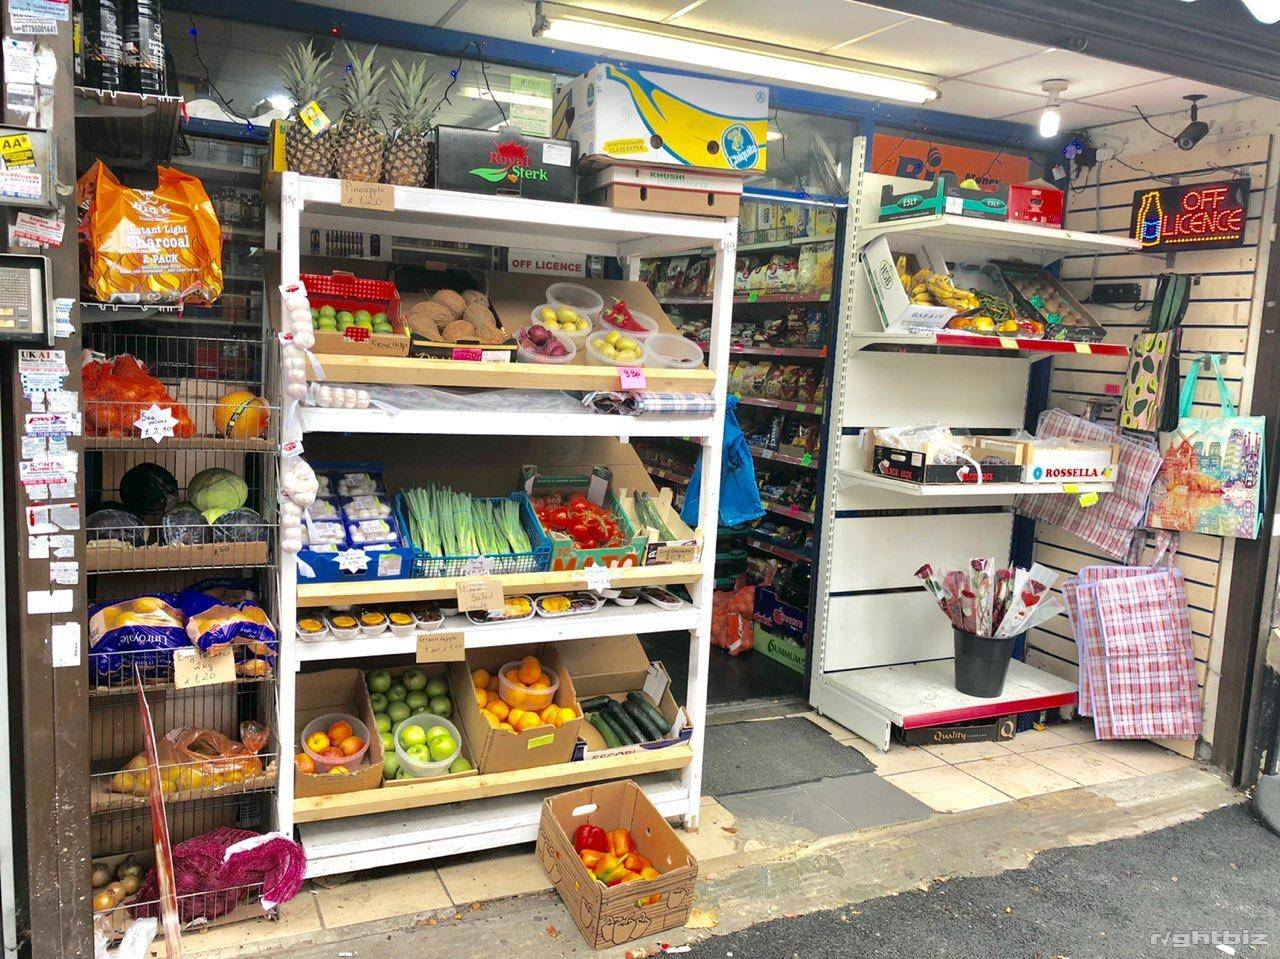 Off License & Grocery for Sale in Goodmayes Ilford IG3 9UN - Image 10